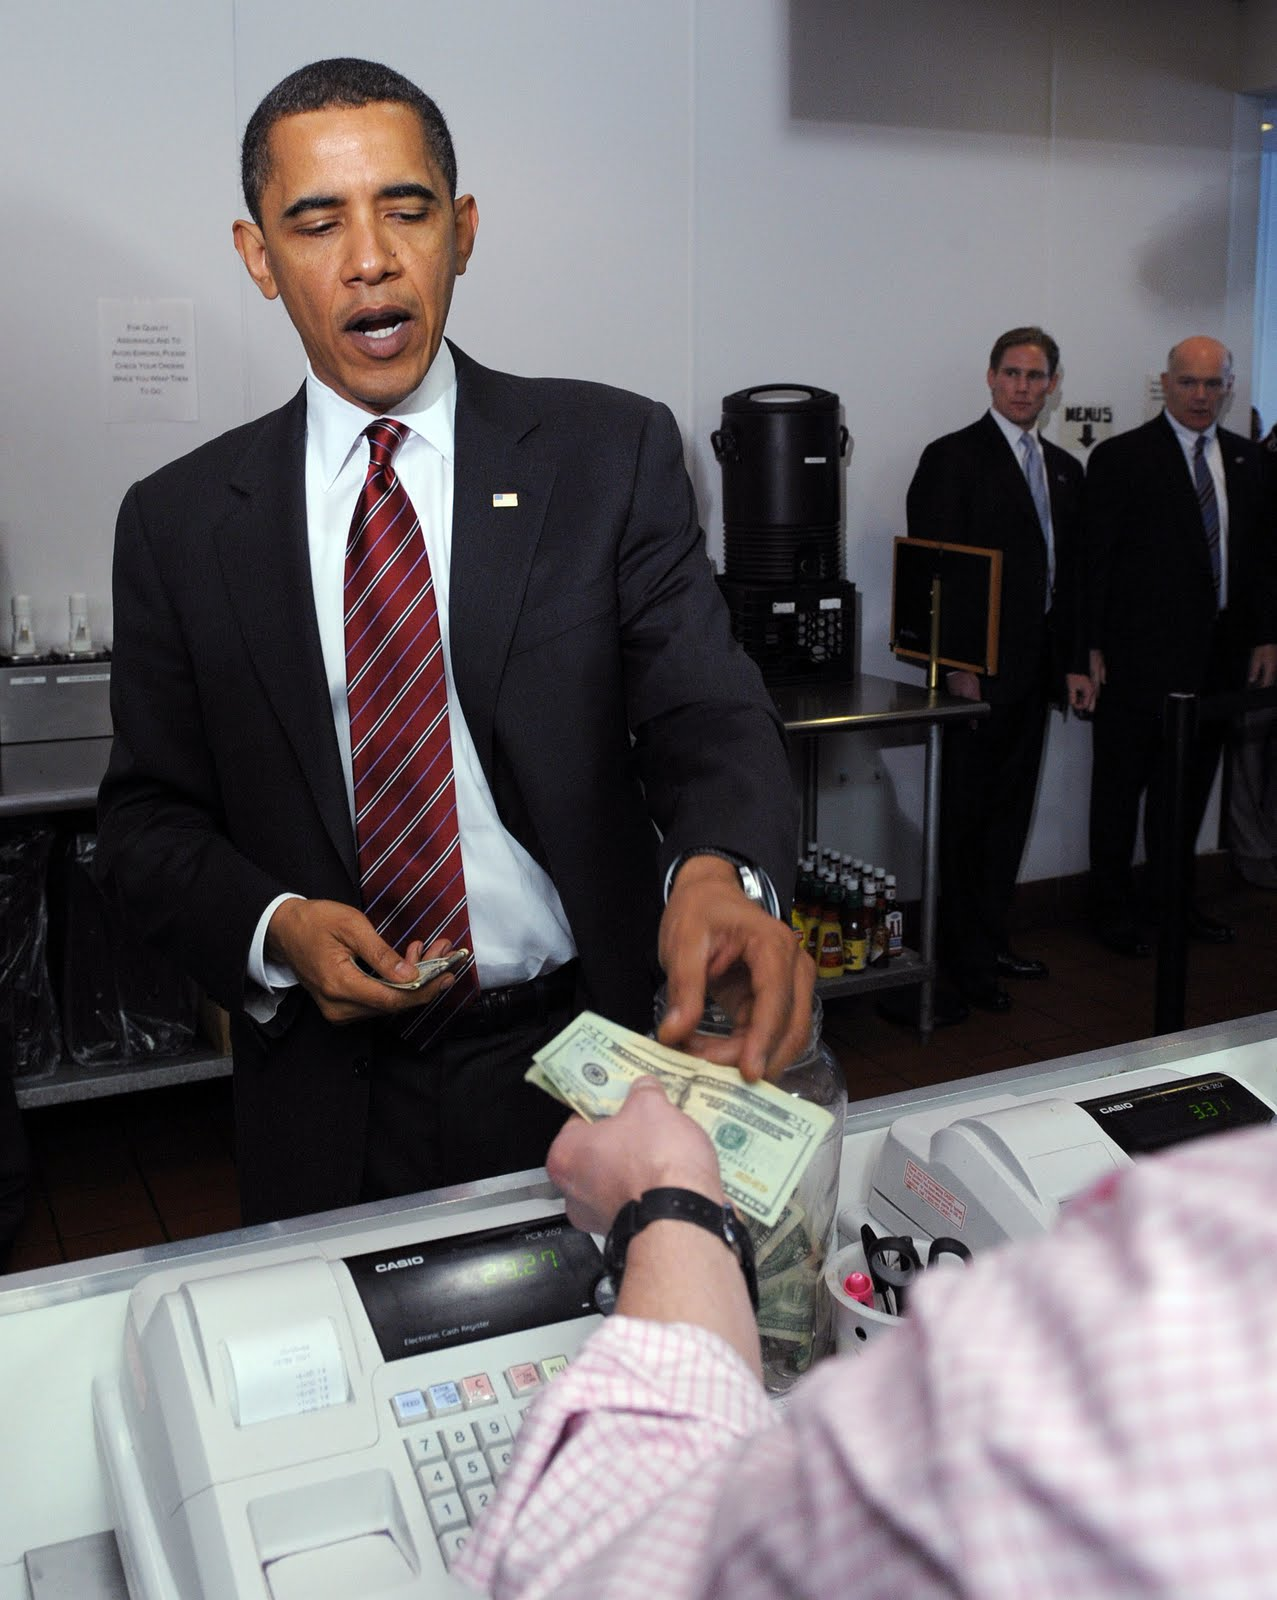 ... Suit Looks Good on Obama, Not so Good to America's Underemployed